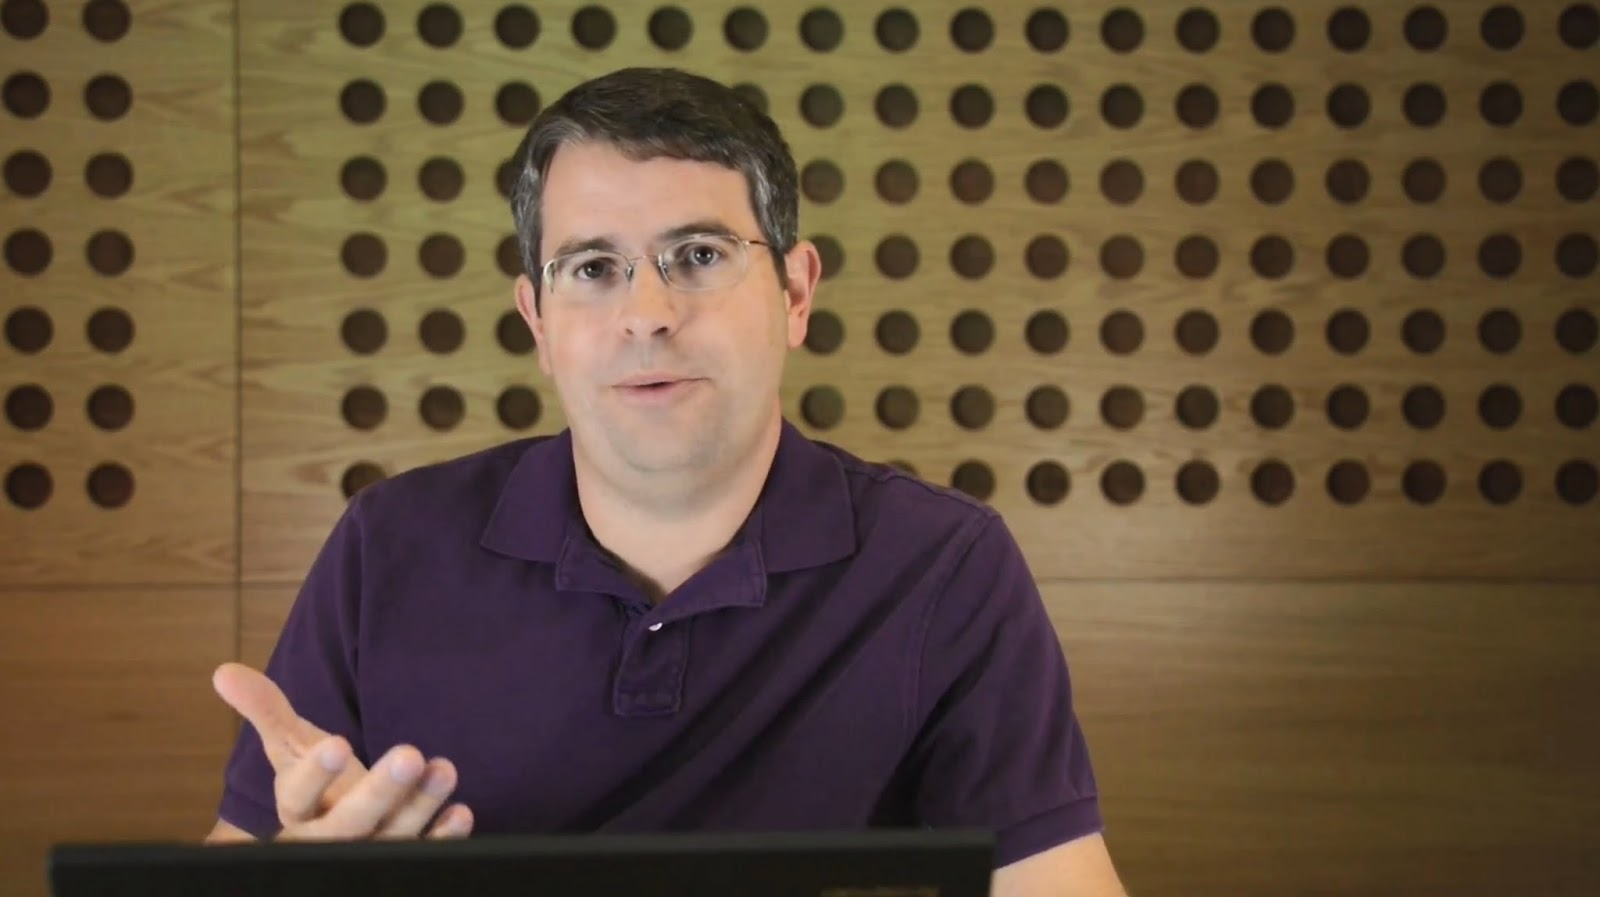 Tips from Matt Cutts